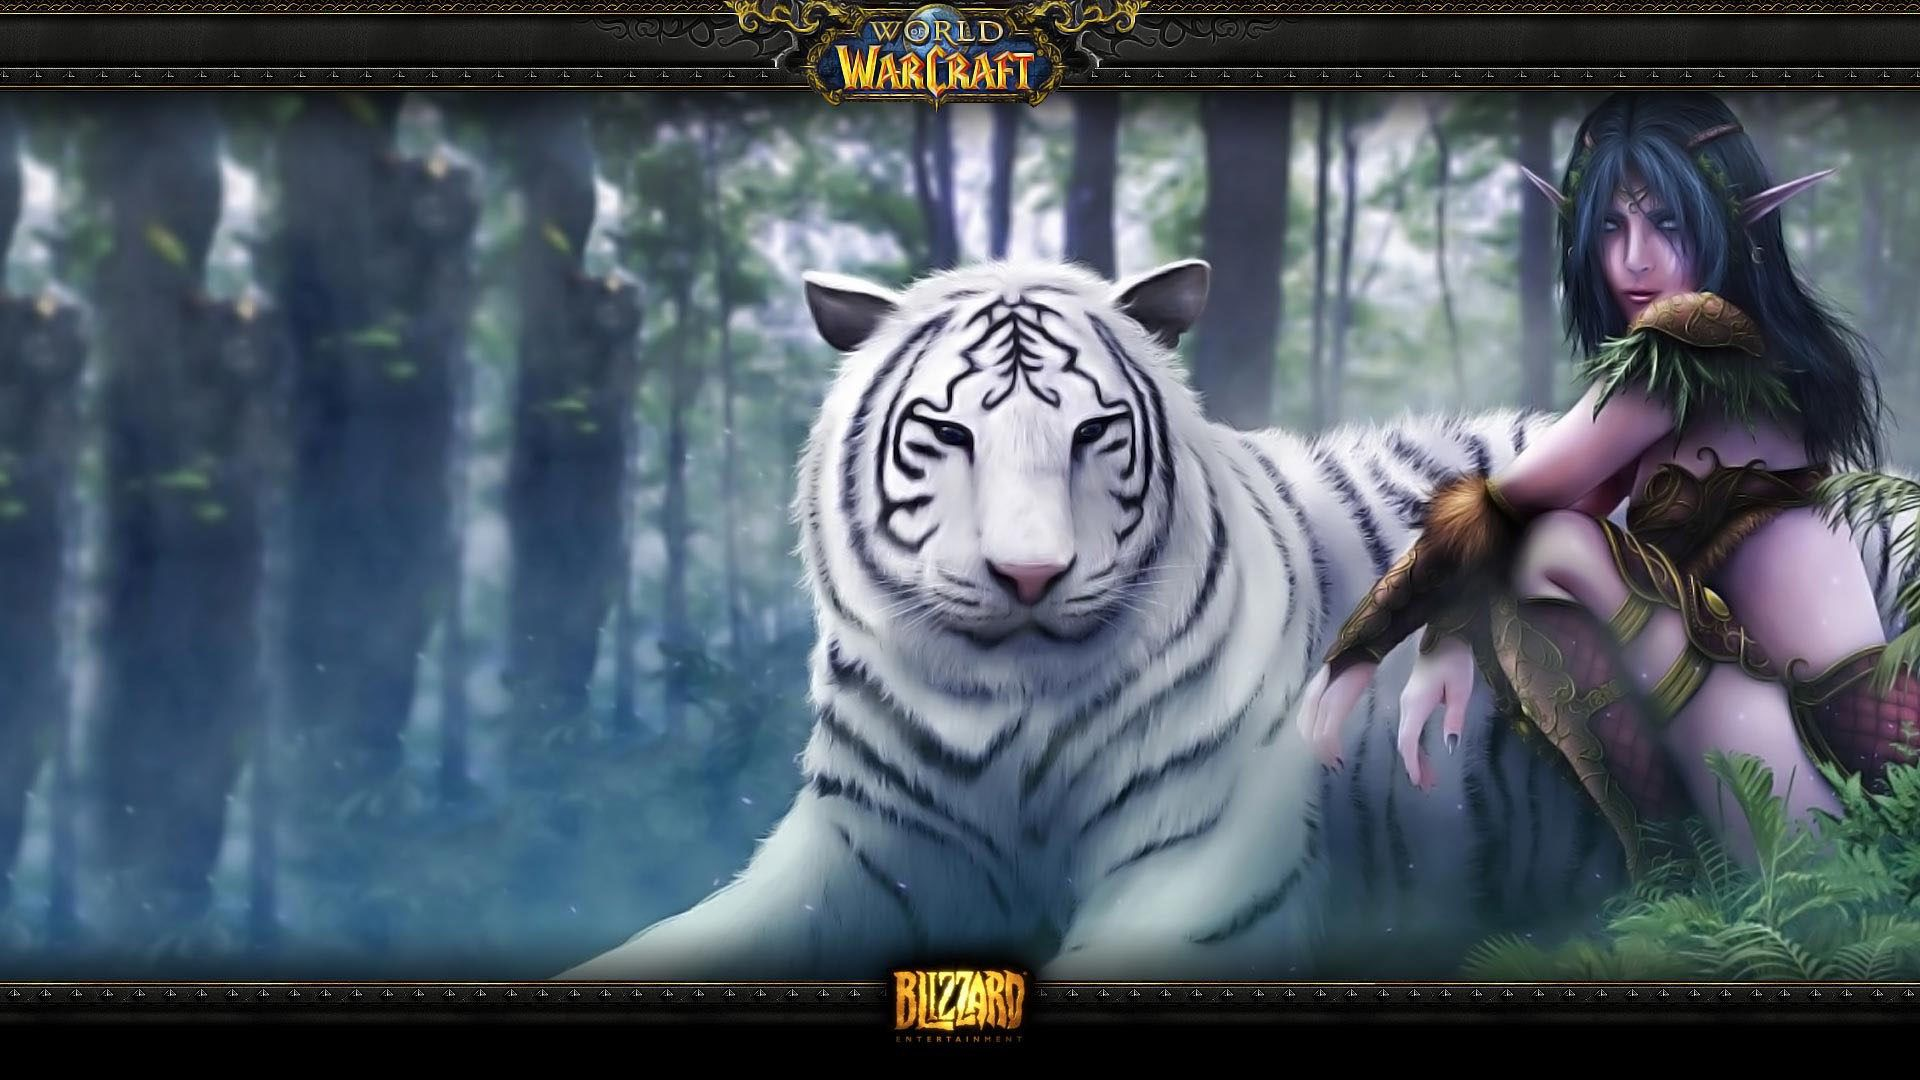 Wow Beautiful Artwork Female Night Elf With Her White Tiger Pet